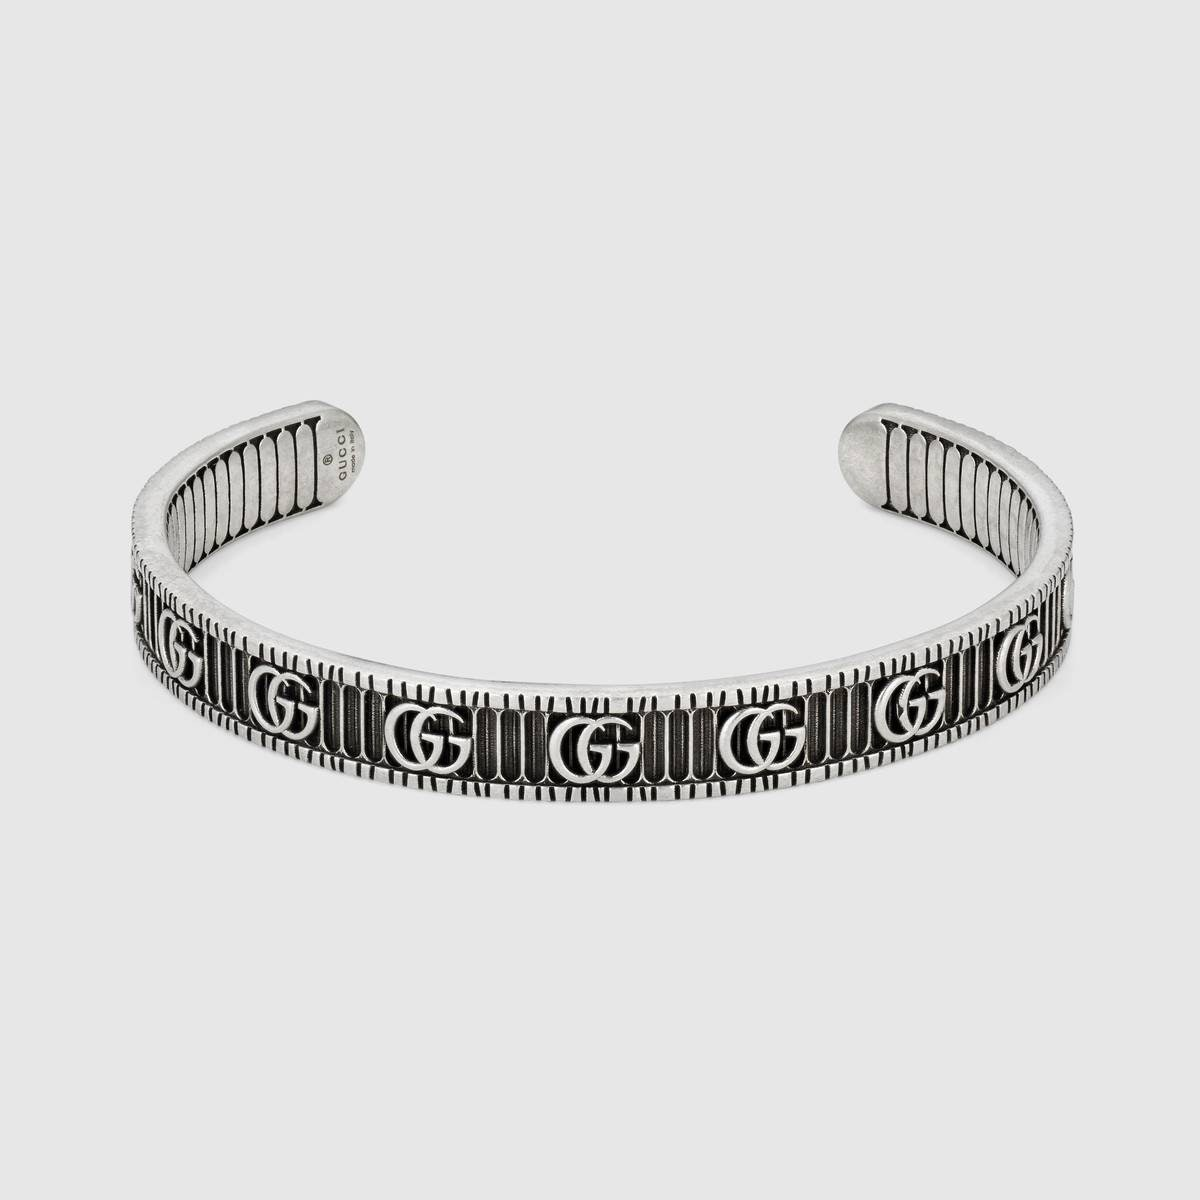 Bracelet with Double G in Silver